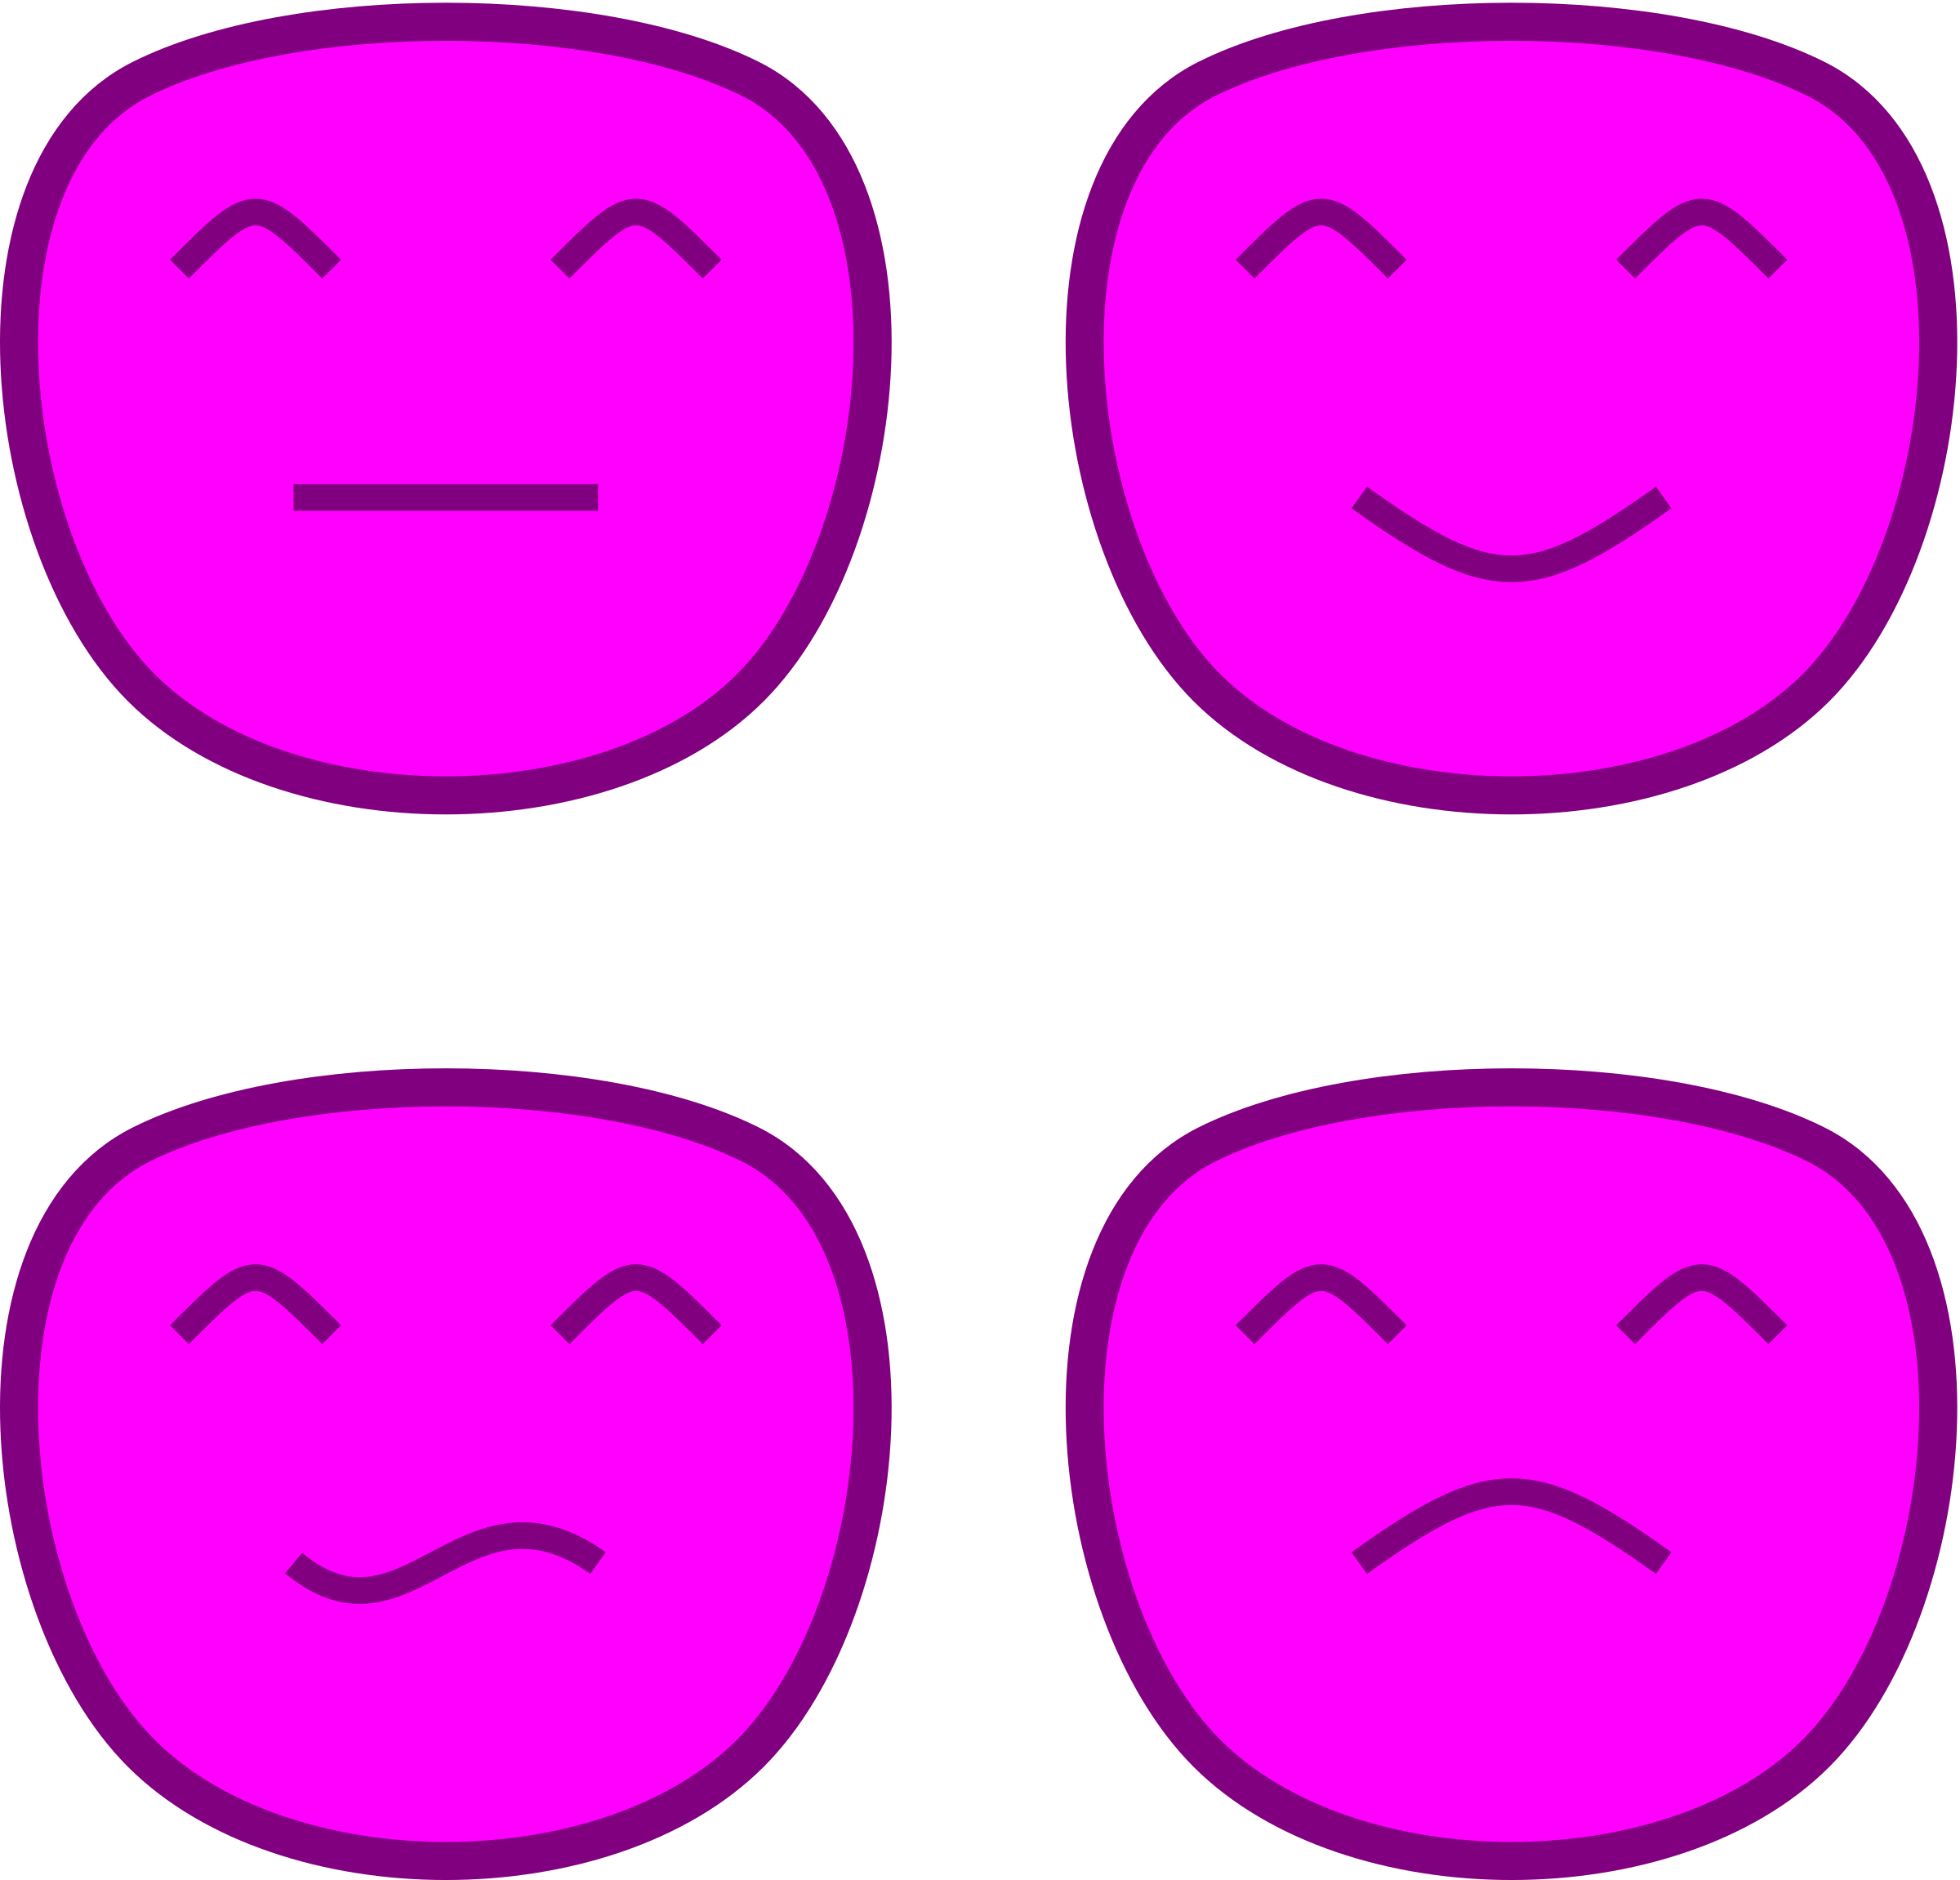 Pink Smileys by matheod